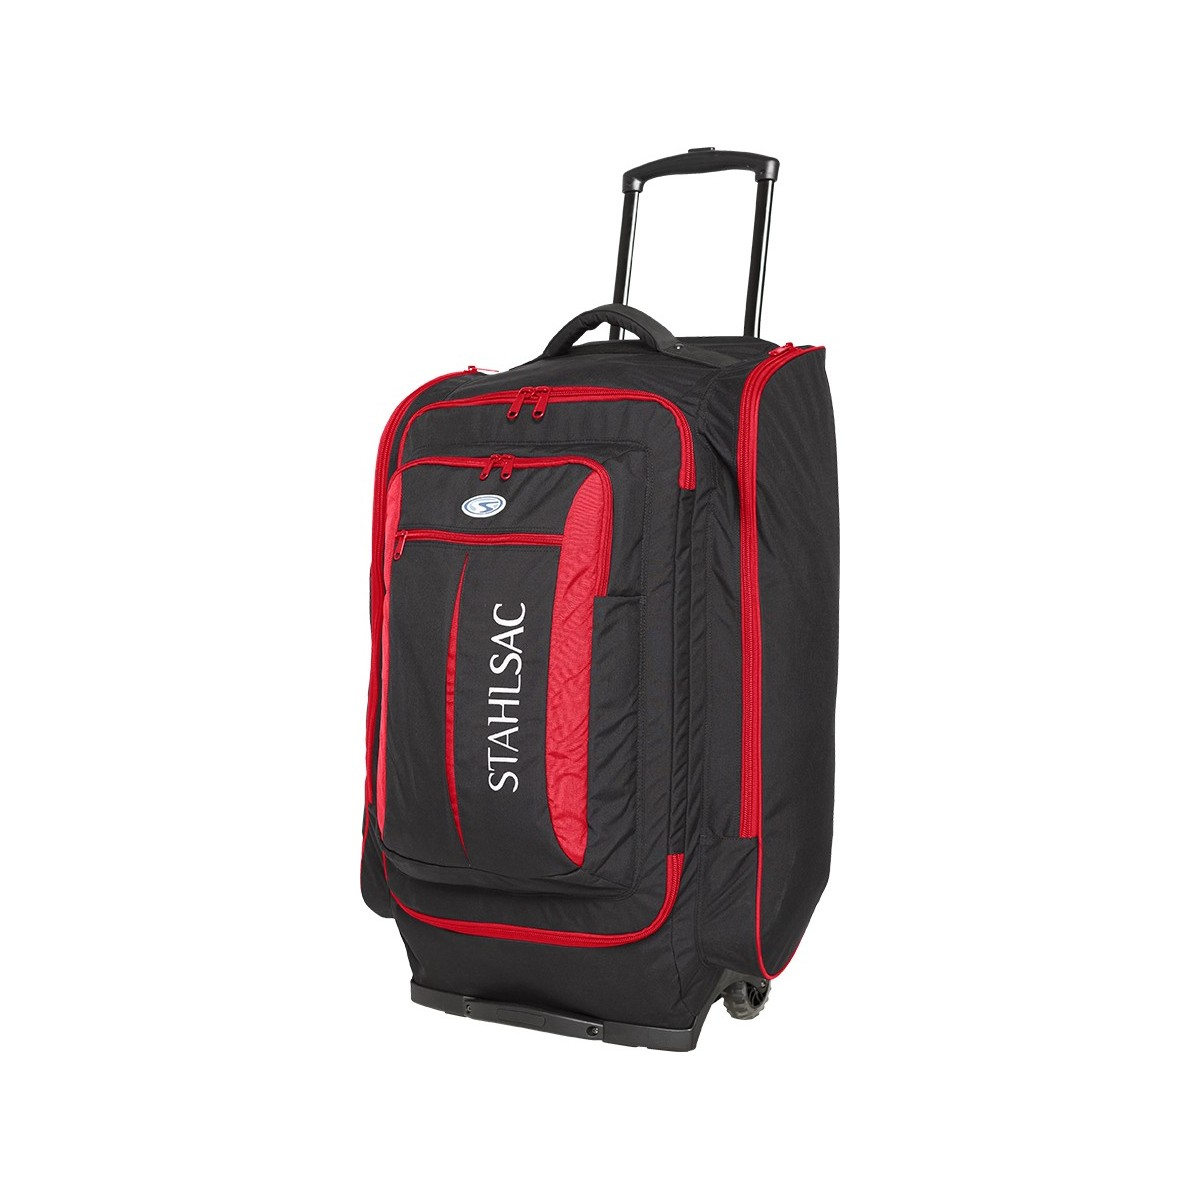 Stahlsac Caicos Cargo Pack Travel Bag